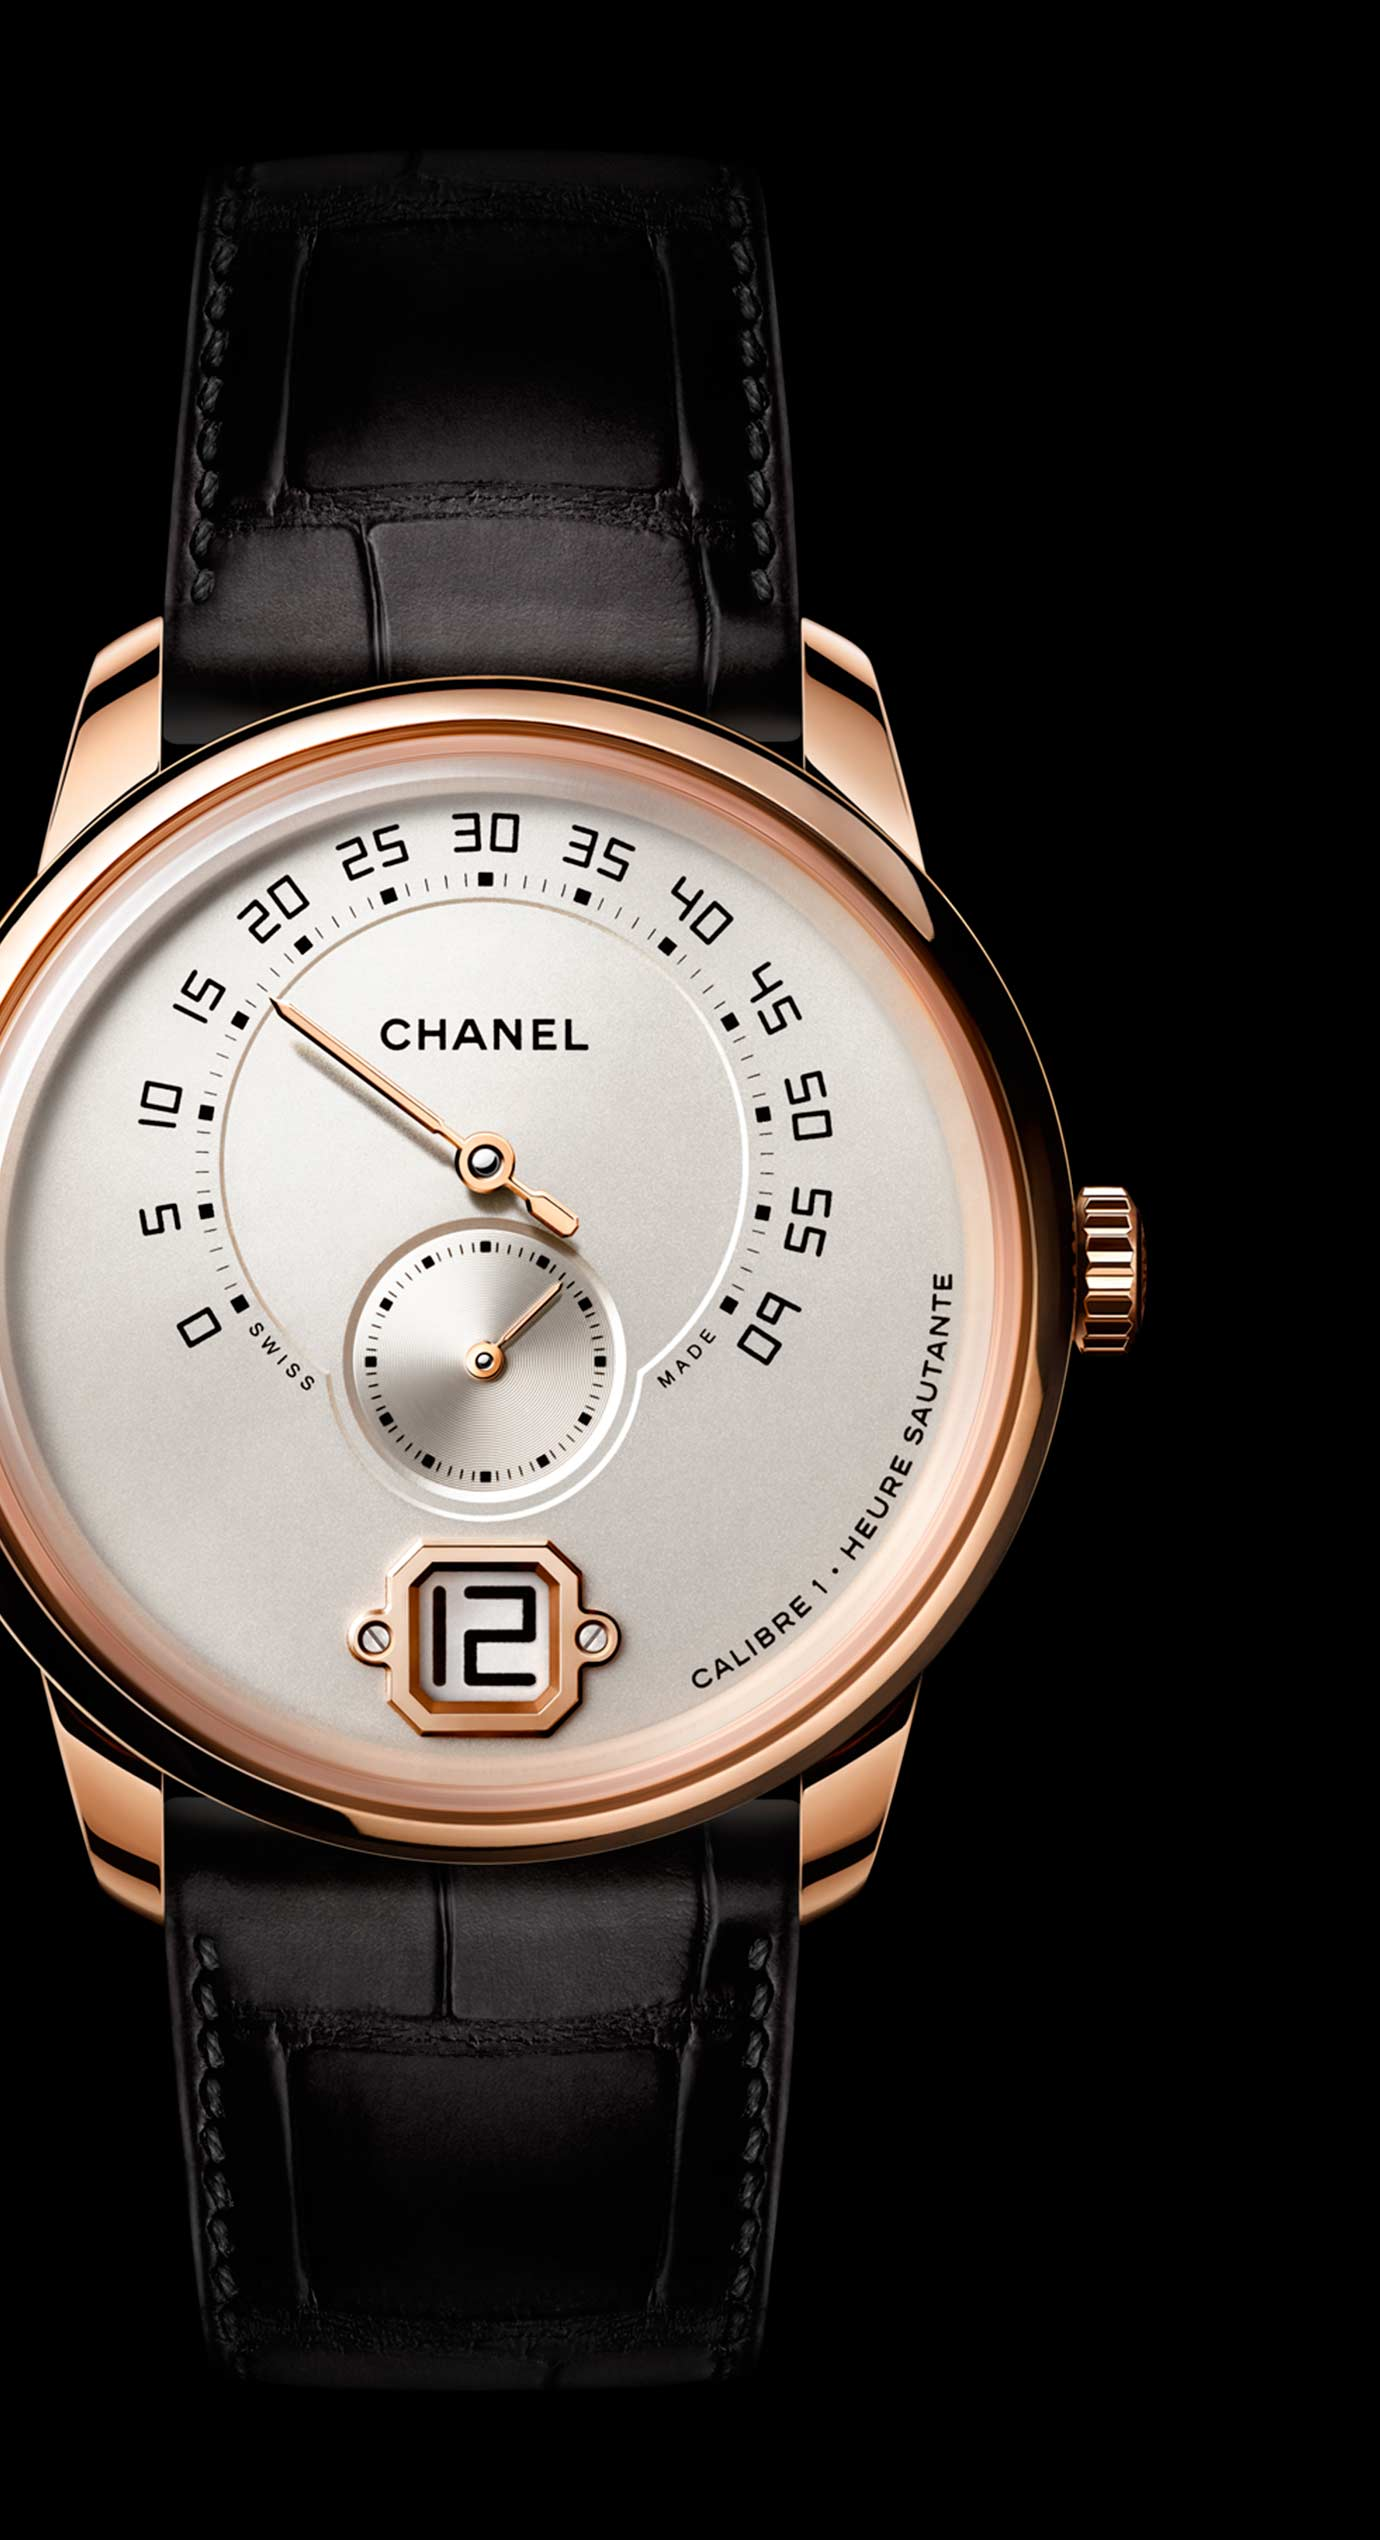 Monsieur watch in 18K BEIGE GOLD, ivory dial with jumping hour, 240° retrograde minutes and small second counter. - Enlarged view